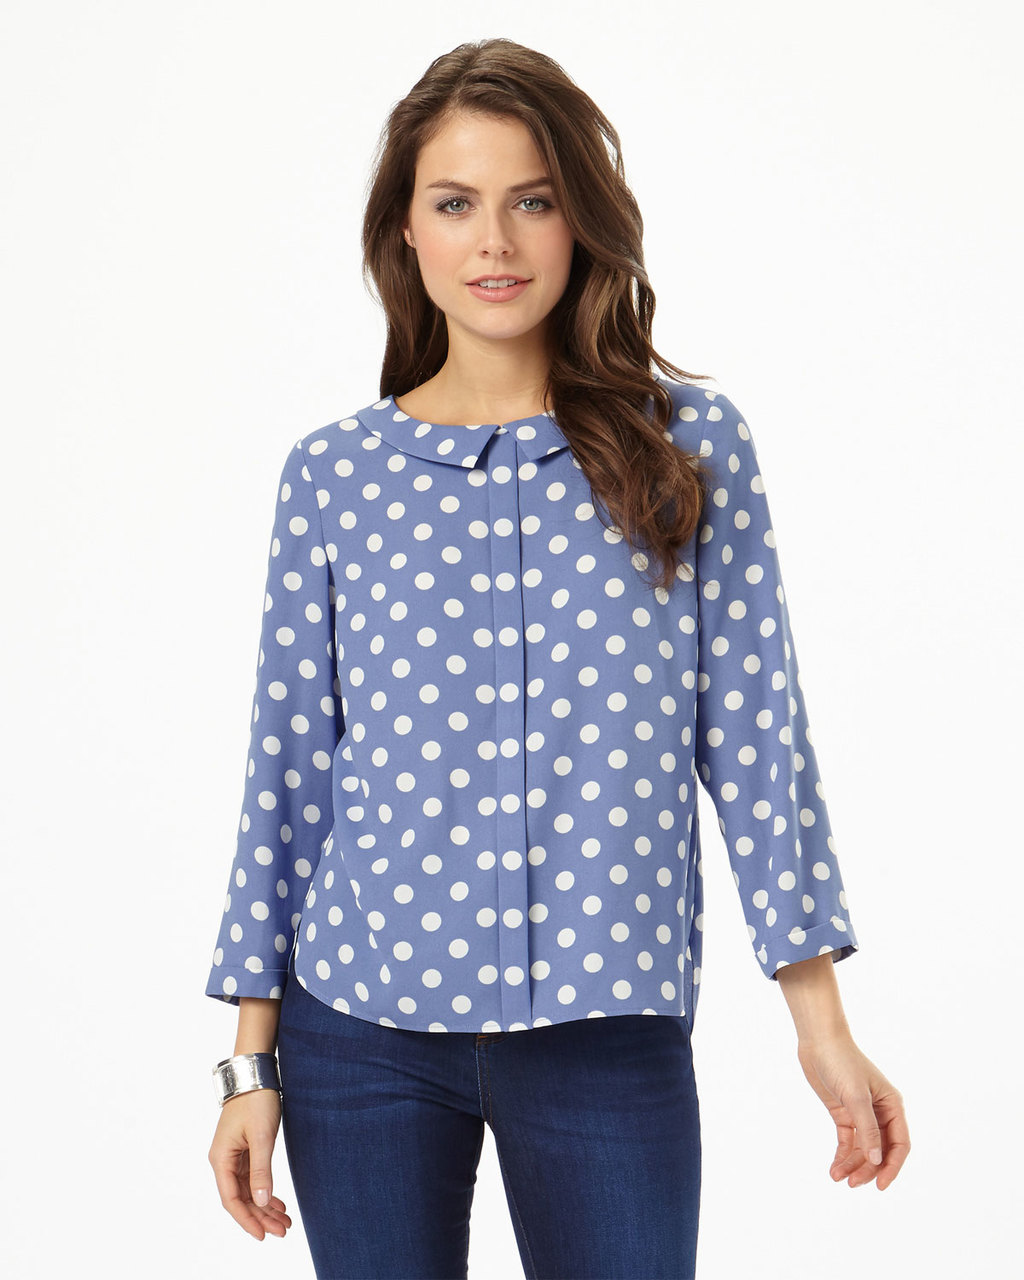 Marilyn Spot Blouse - neckline: shirt collar/peter pan/zip with opening; style: blouse; pattern: polka dot; secondary colour: white; predominant colour: pale blue; occasions: casual, creative work; length: standard; fibres: polyester/polyamide - 100%; fit: straight cut; sleeve length: 3/4 length; sleeve style: standard; pattern type: fabric; pattern size: standard; texture group: other - light to midweight; season: s/s 2016; wardrobe: highlight